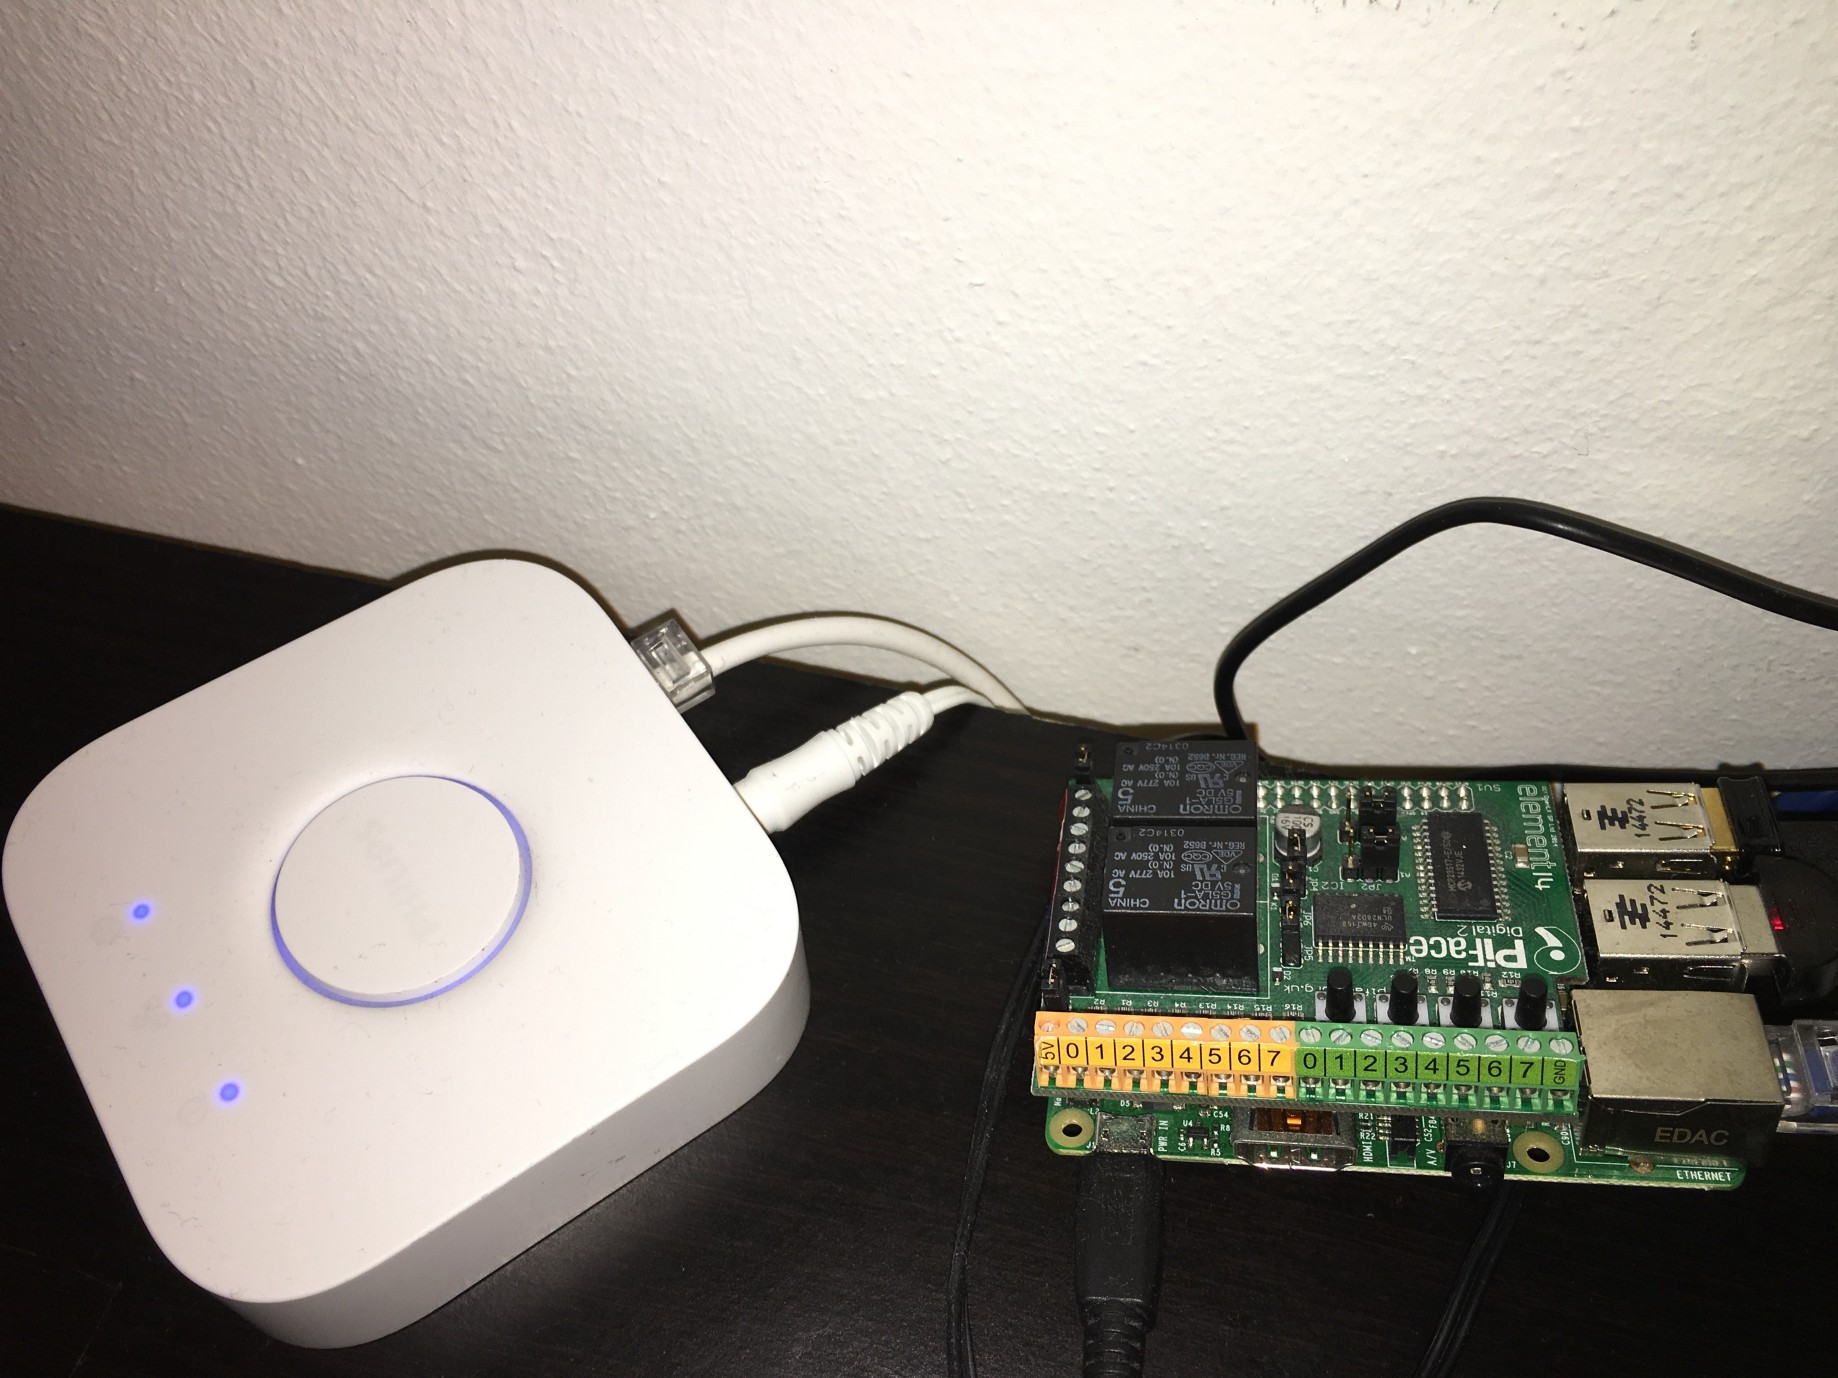 Voice-controlled home automation made simple - Alvin Stanescu - Medium